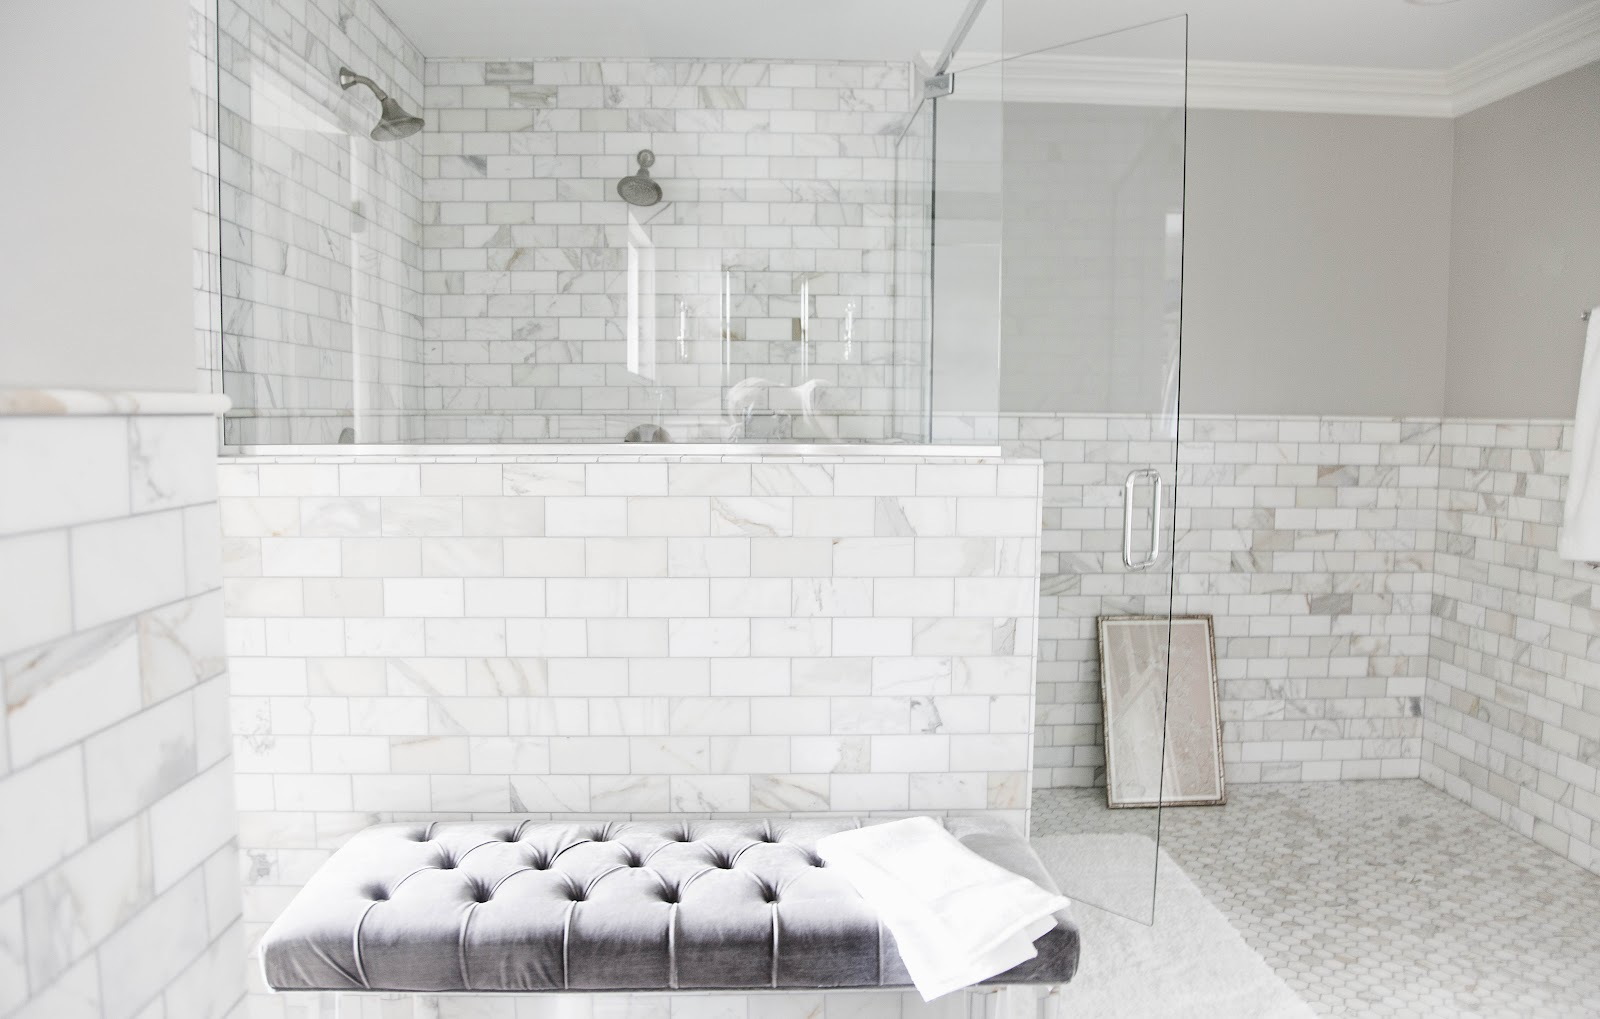 Wide Glass Shower Room and Grey Tufted Bench Placed near Marble Subway Tile Bathroom Wall